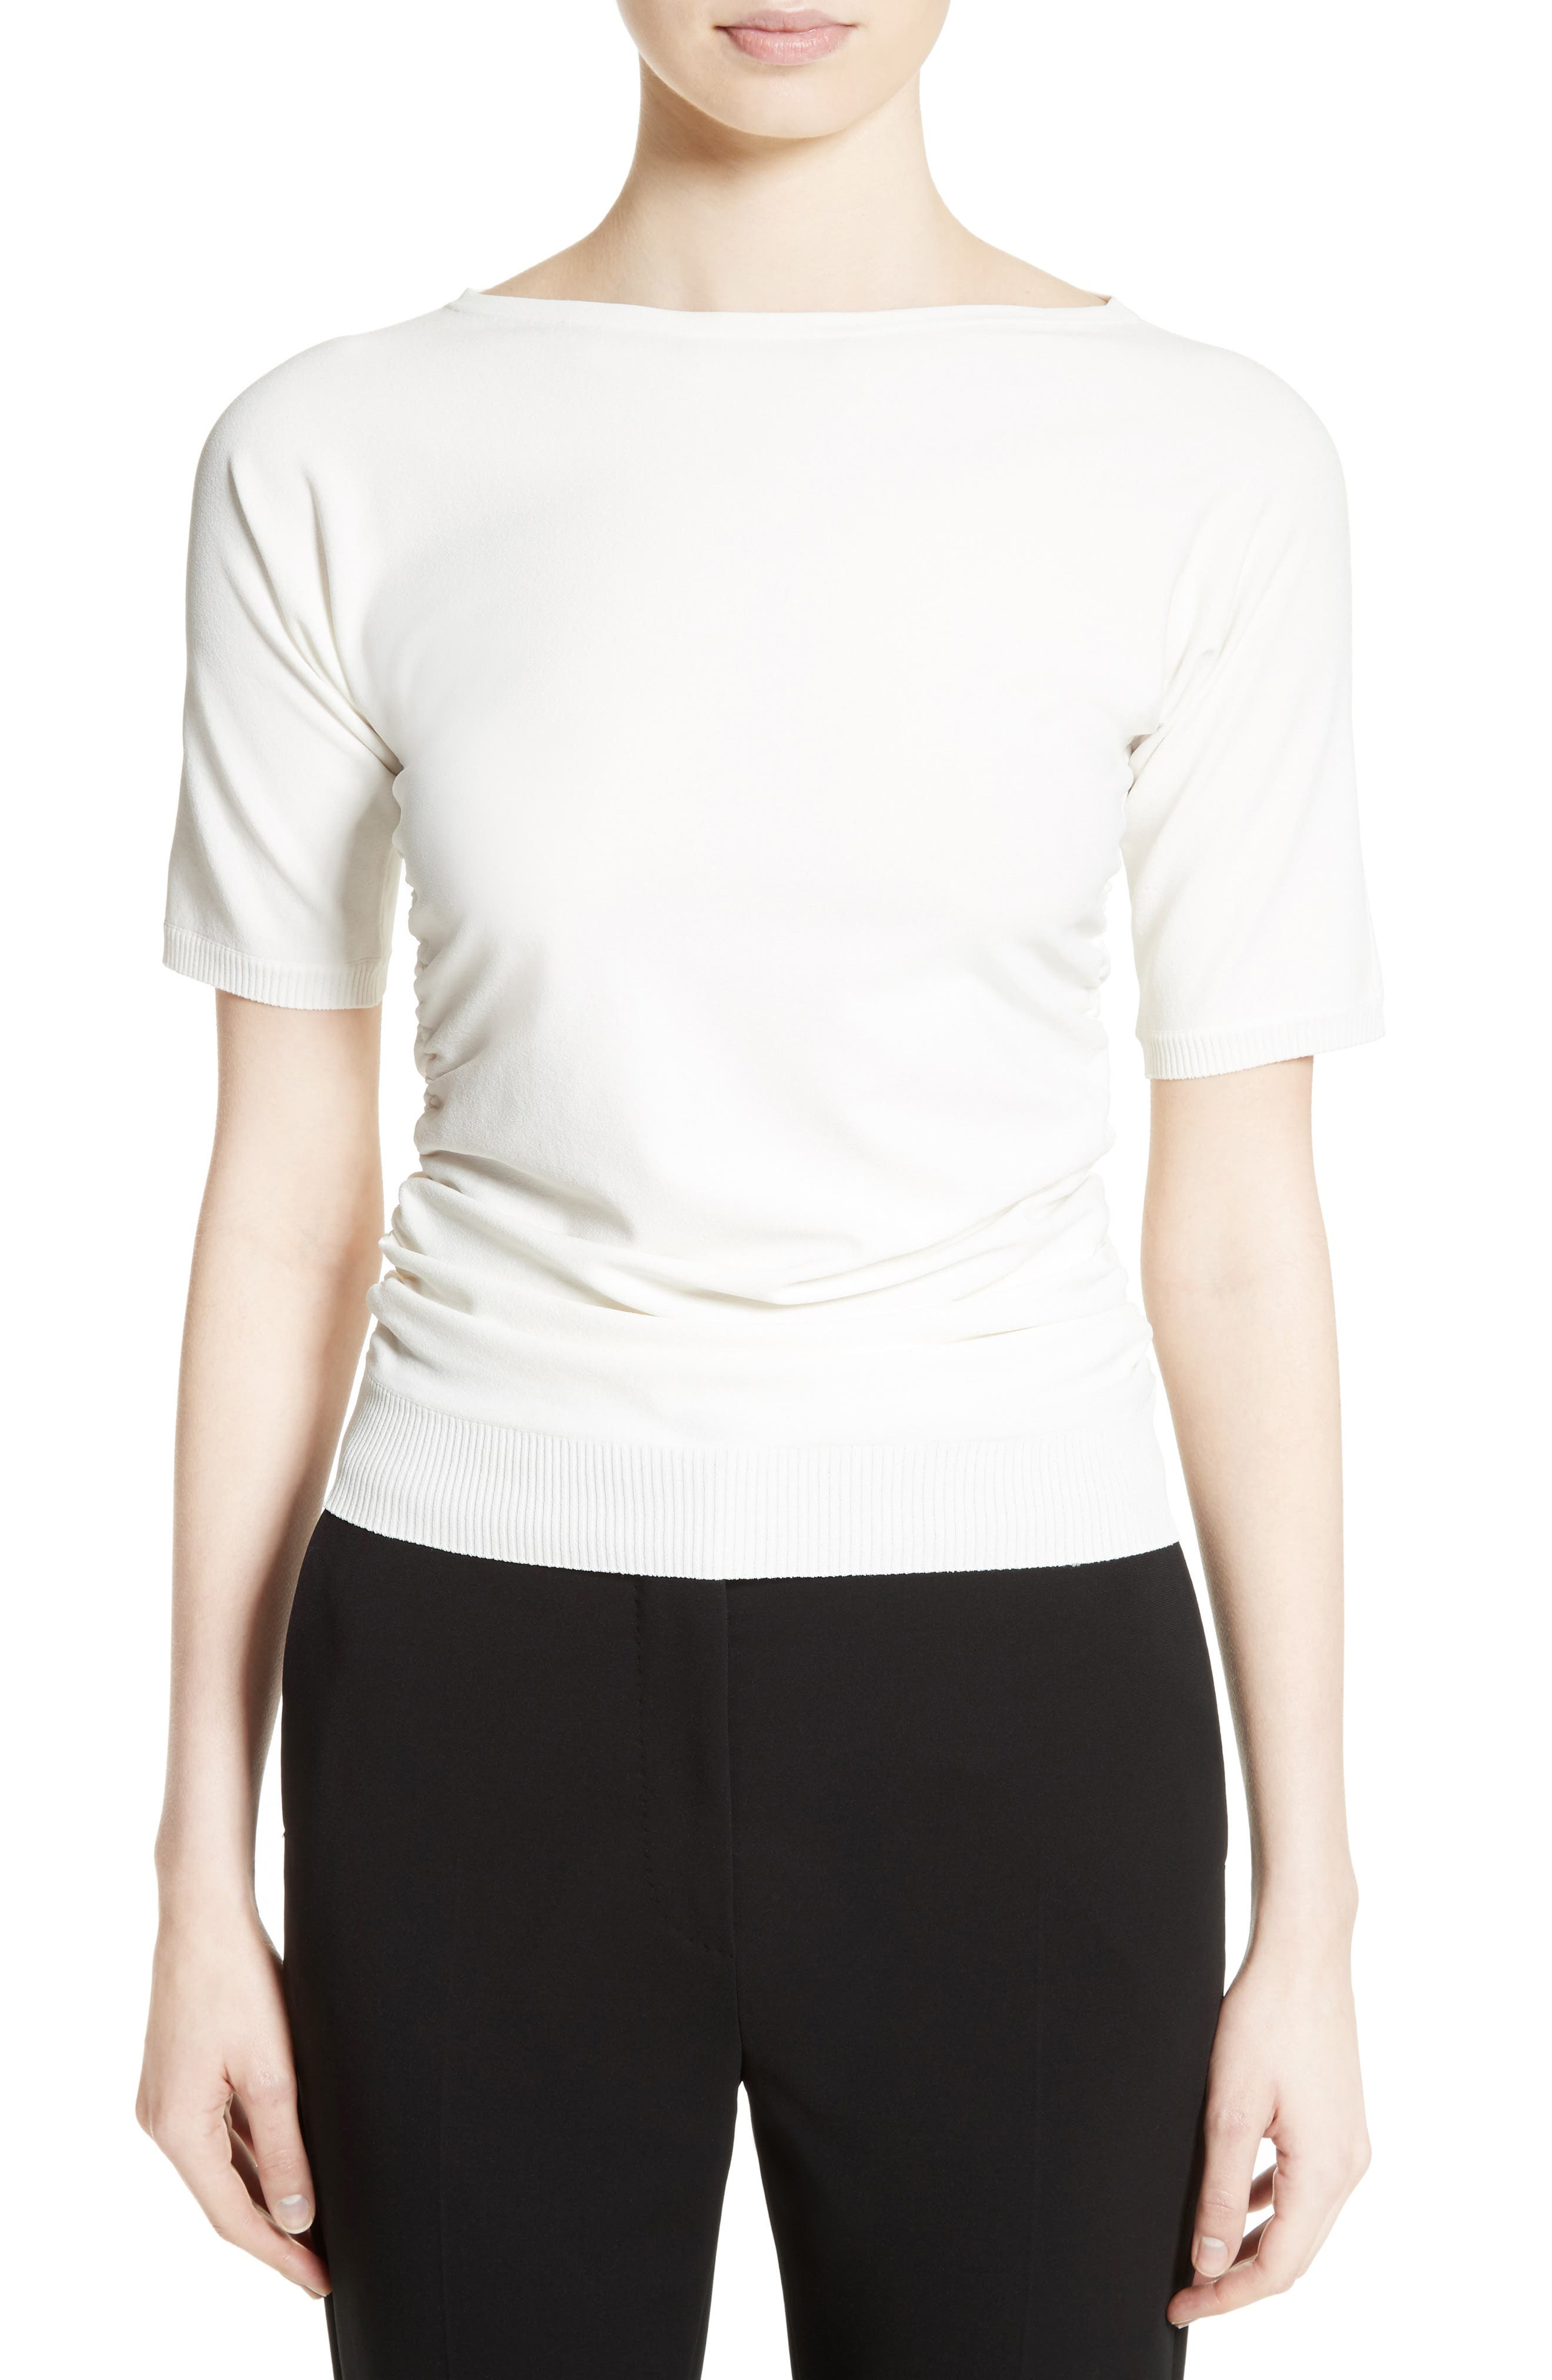 Joice Ruched Knit Top,                             Main thumbnail 1, color,                             White